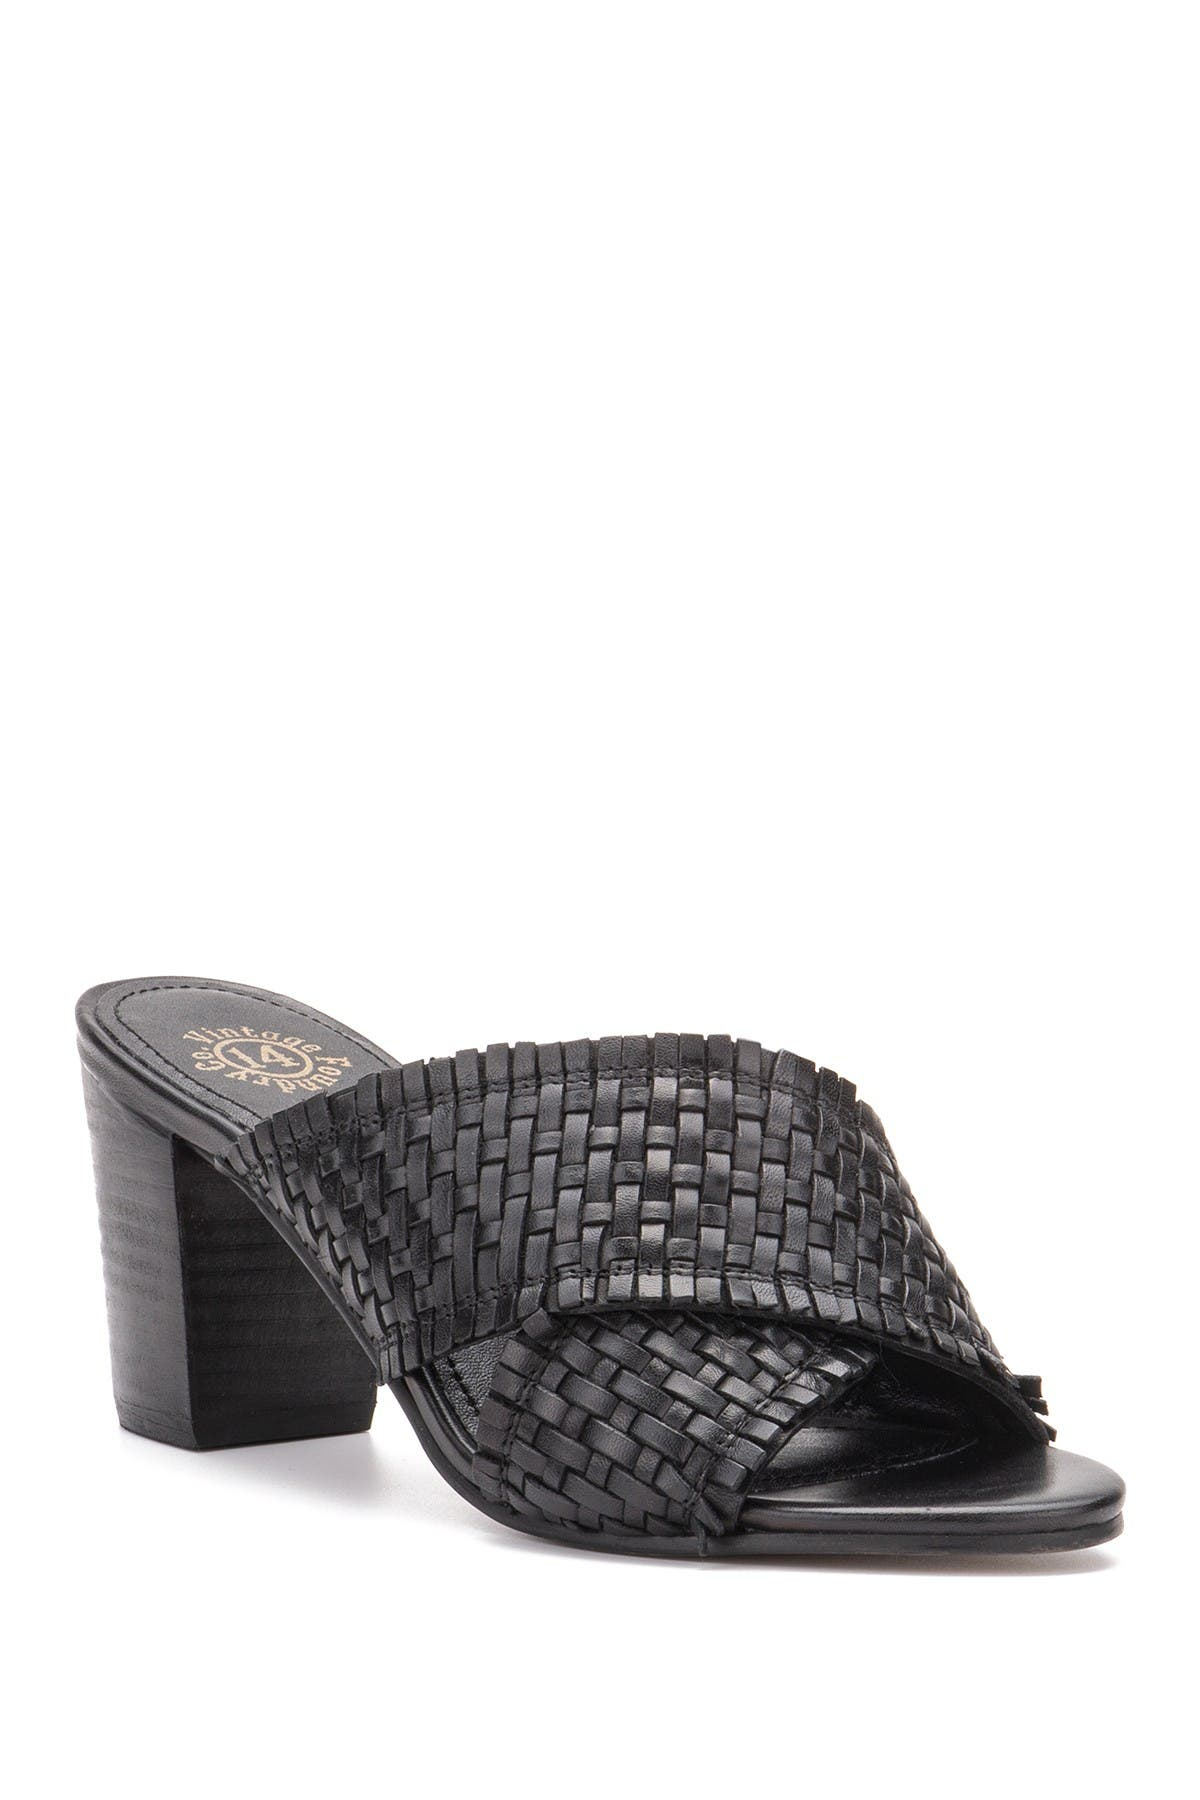 Image of Vintage Foundry Louisa Woven Sandal